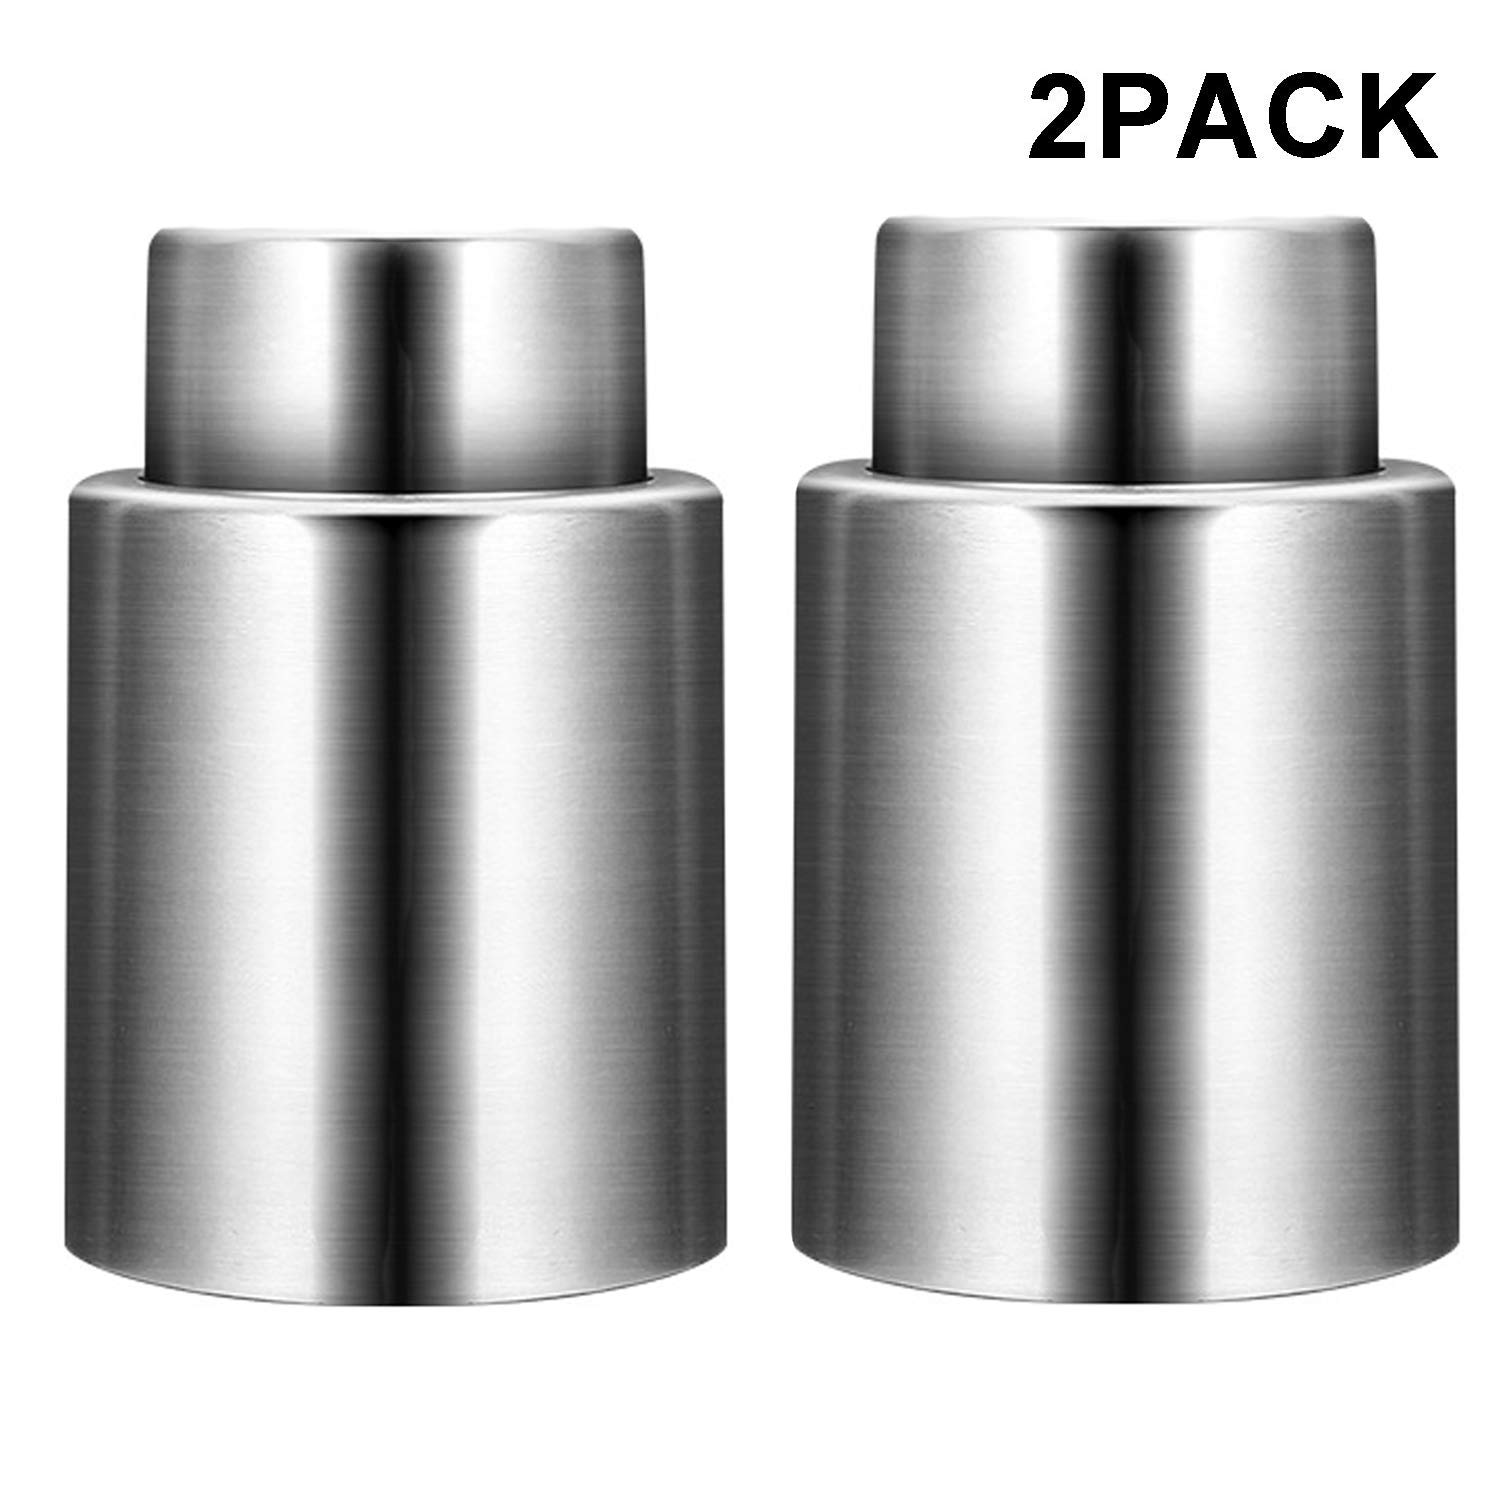 Wine Stoppers with Vacuum, Stainless Steel Wine Saver Pump with Silicone, Durable Vacuum Bottle Stoppers, Air Tight Wine Sealer (Set of 2) by HYZ